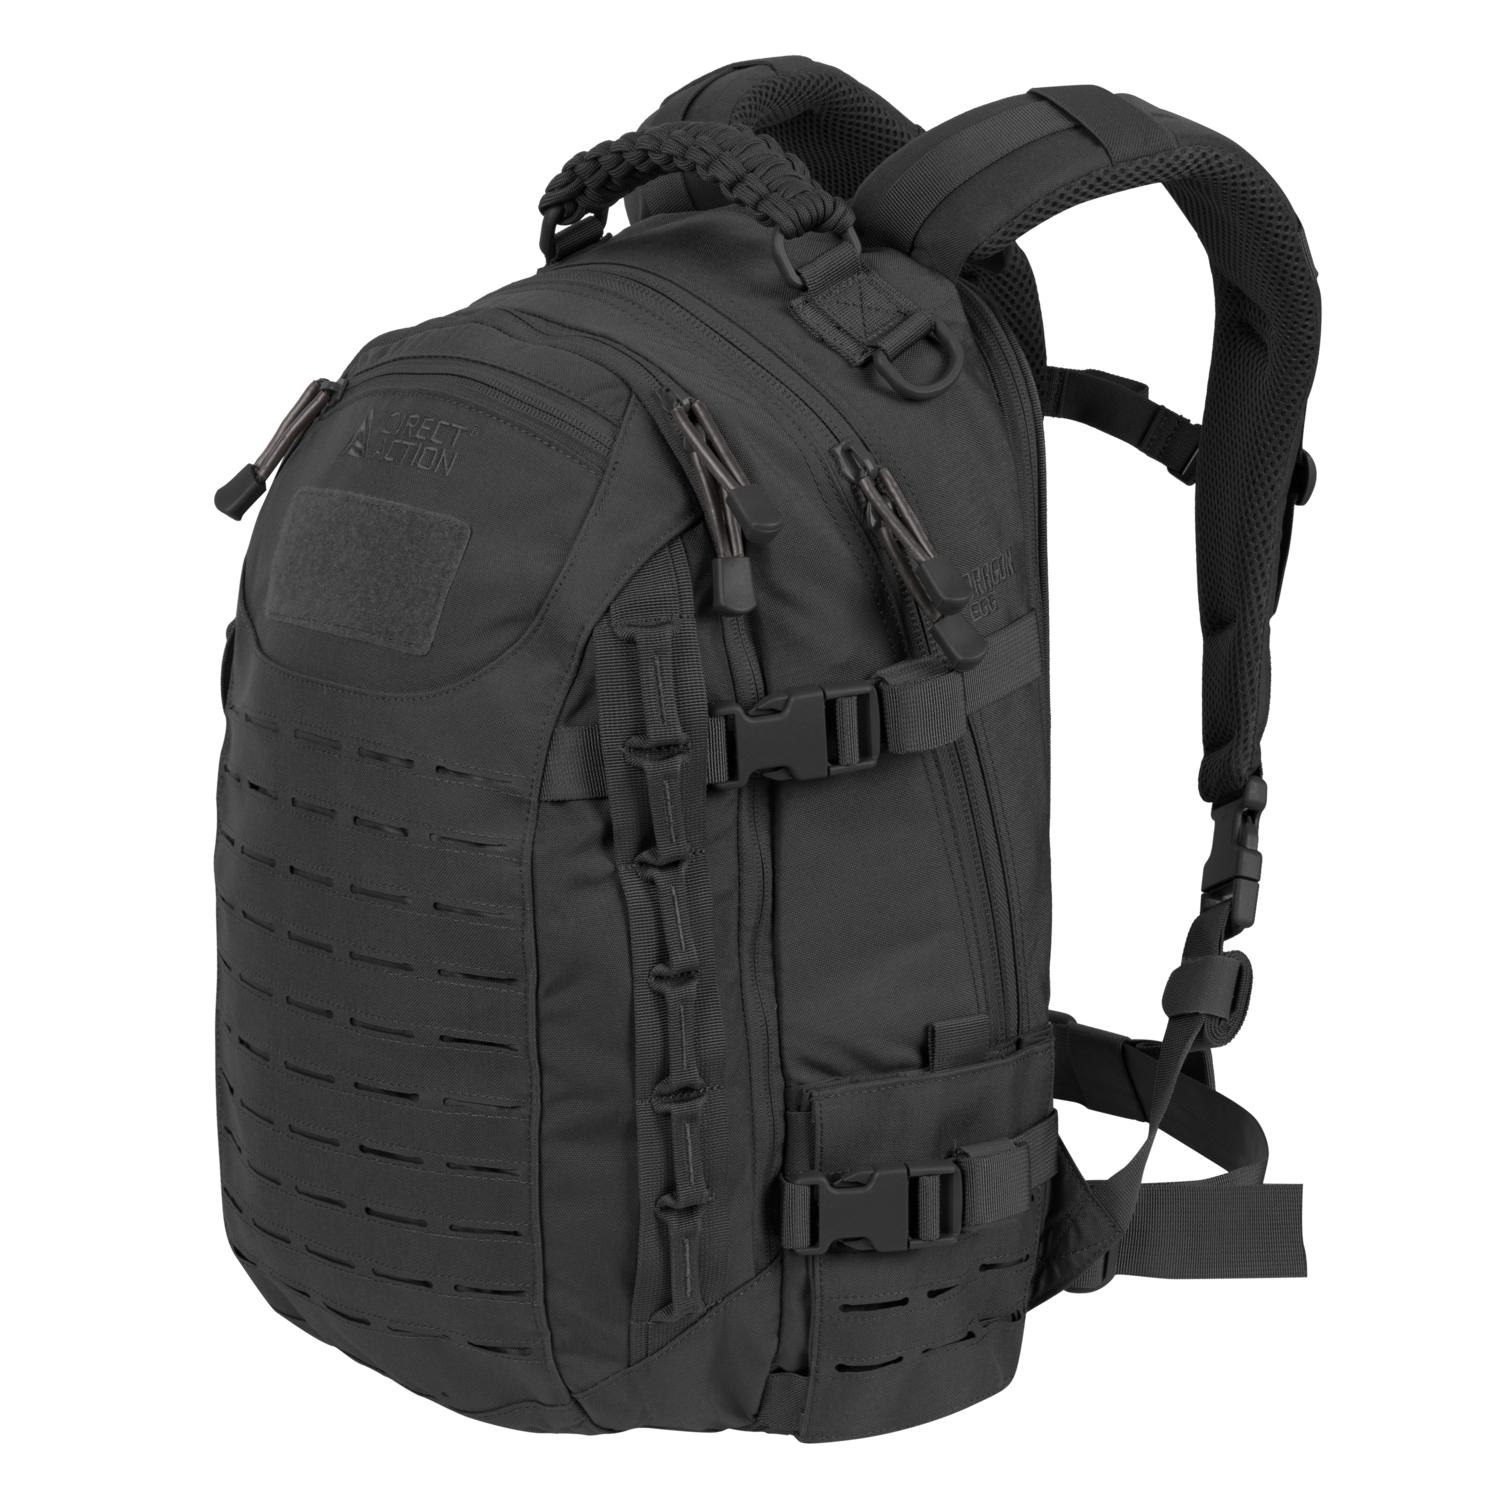 Dragon Egg Tactical Backpack - Direct Action® Advanced Tactical Gear 3748115719021